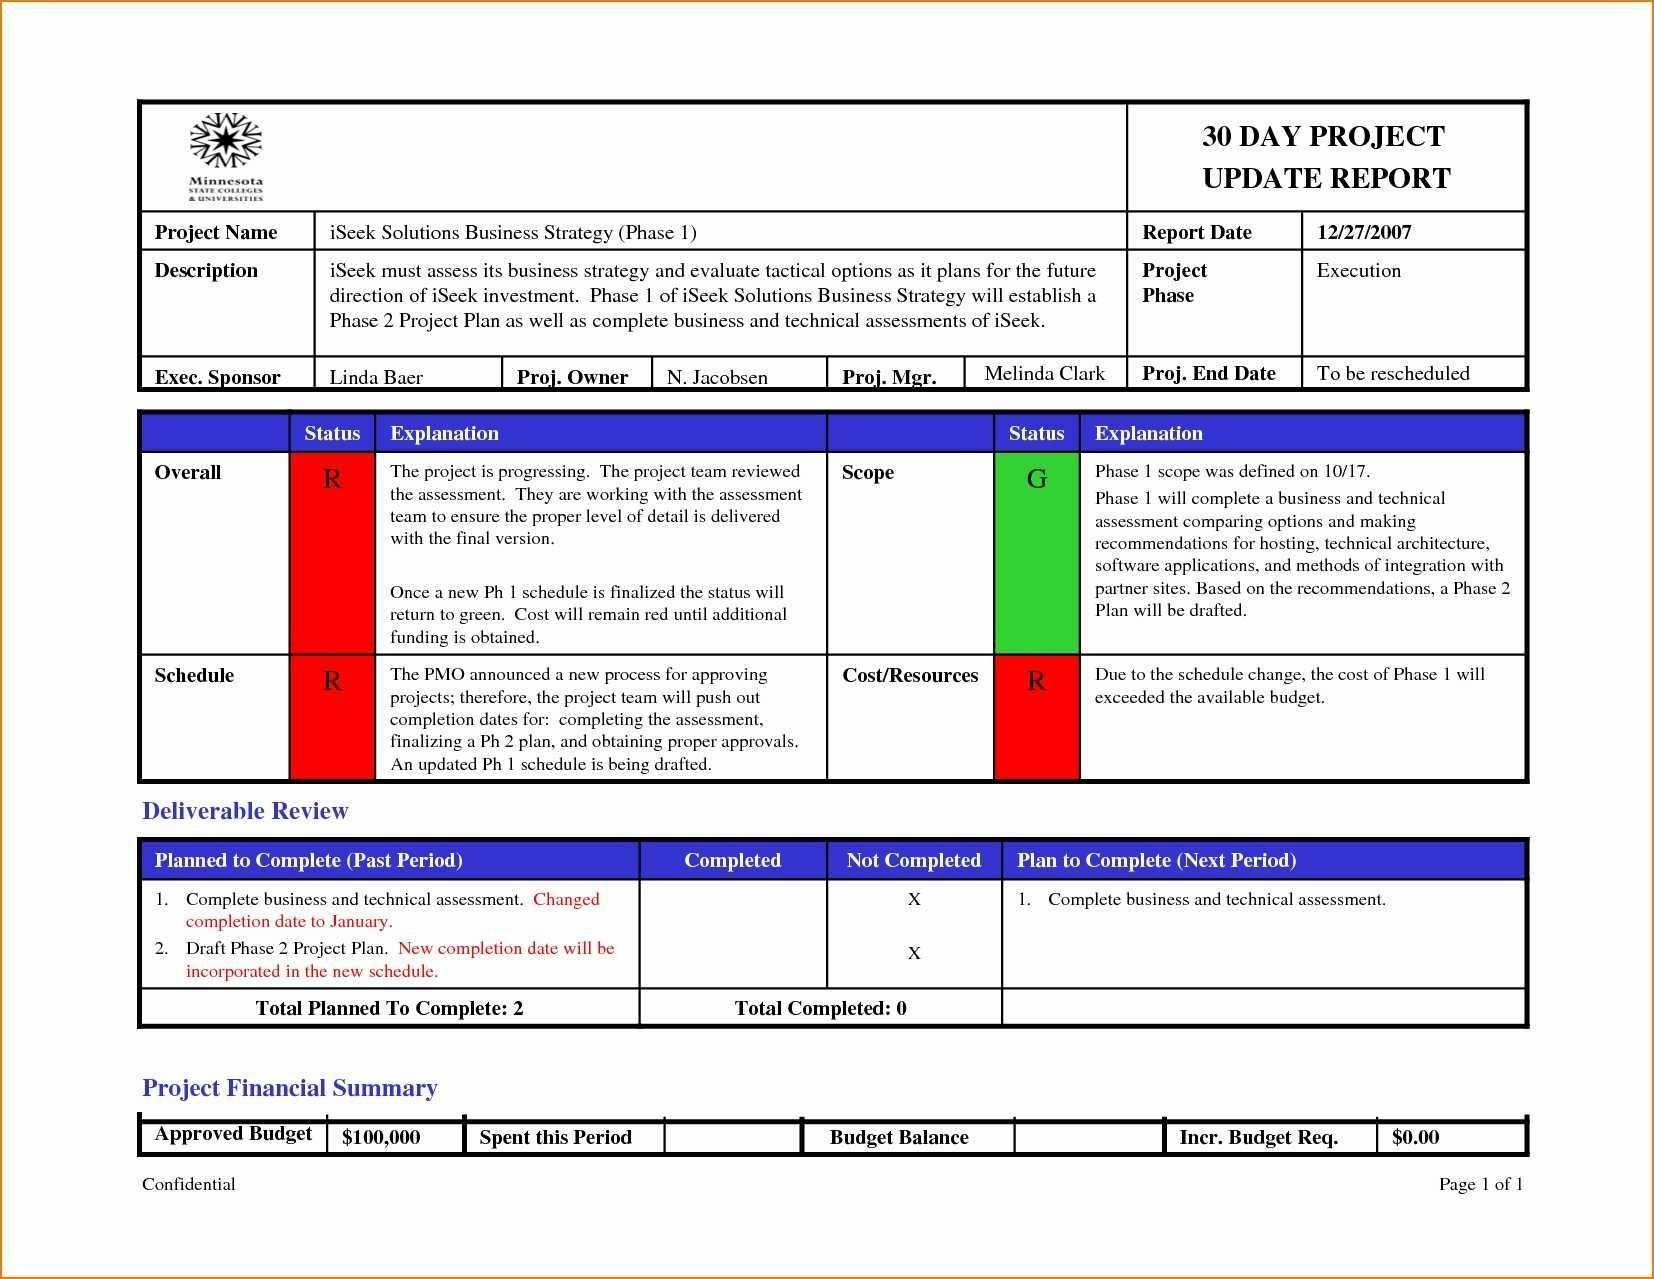 The Stunning Project Management Report Template Status Ideas Team Excel Within Project Status Re Project Status Report Progress Report Template Report Template Weekly project status report templates